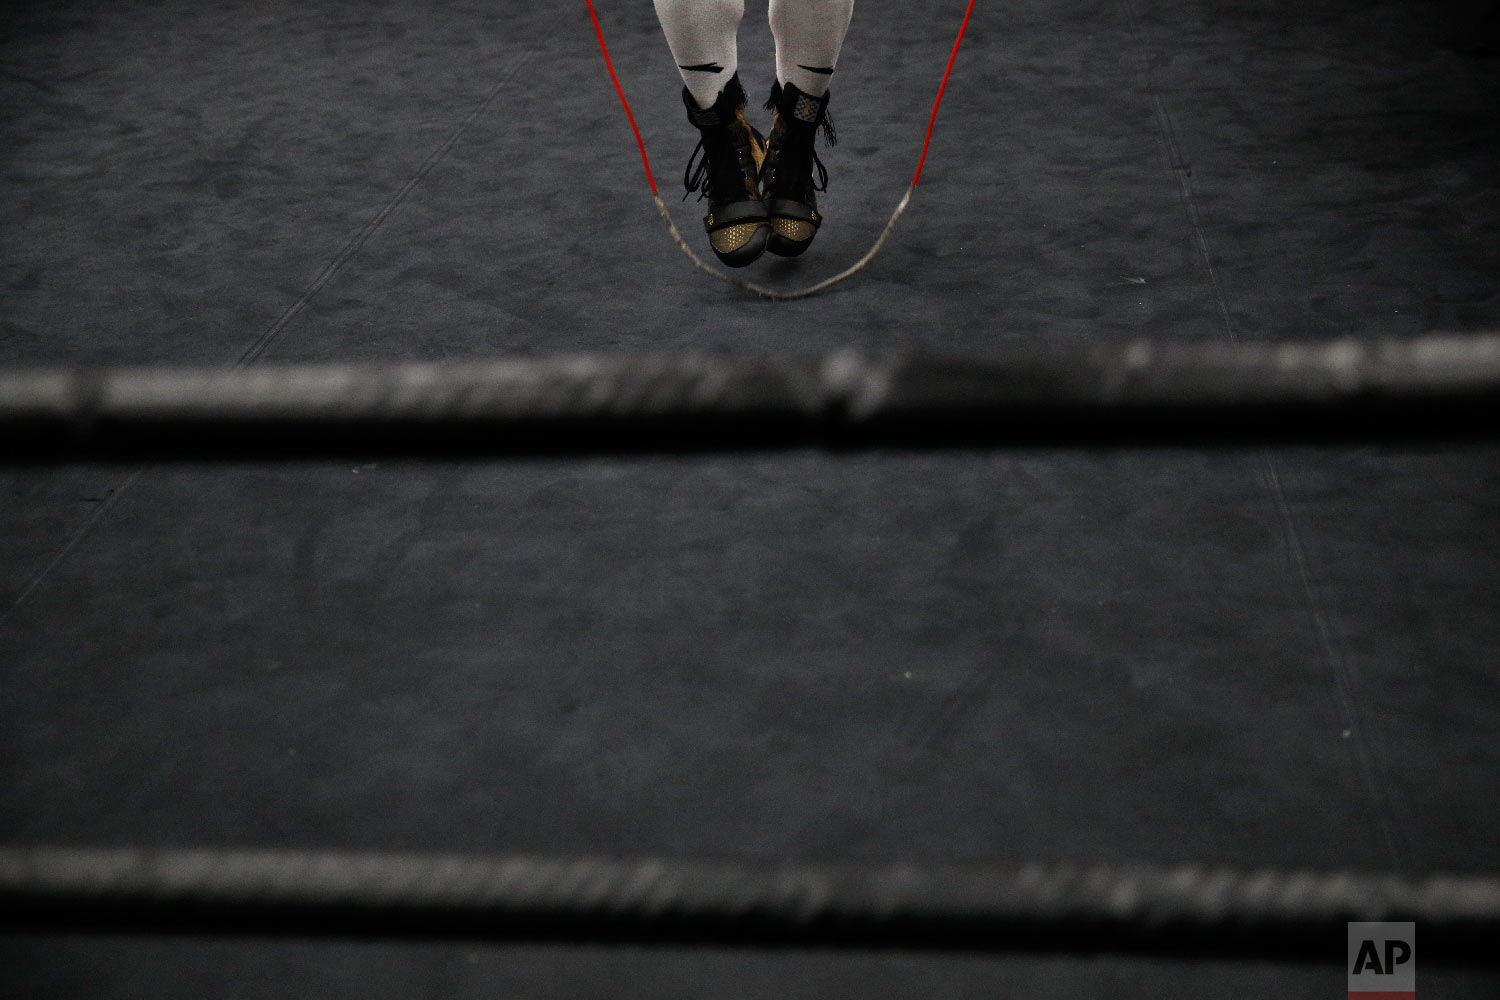 Boxer Manny Pacquiao jumps rope while cooling down after his workout at the Wild Card Boxing Club on Jan. 14, 2019, in Los Angeles. (AP Photo/Jae C. Hong)